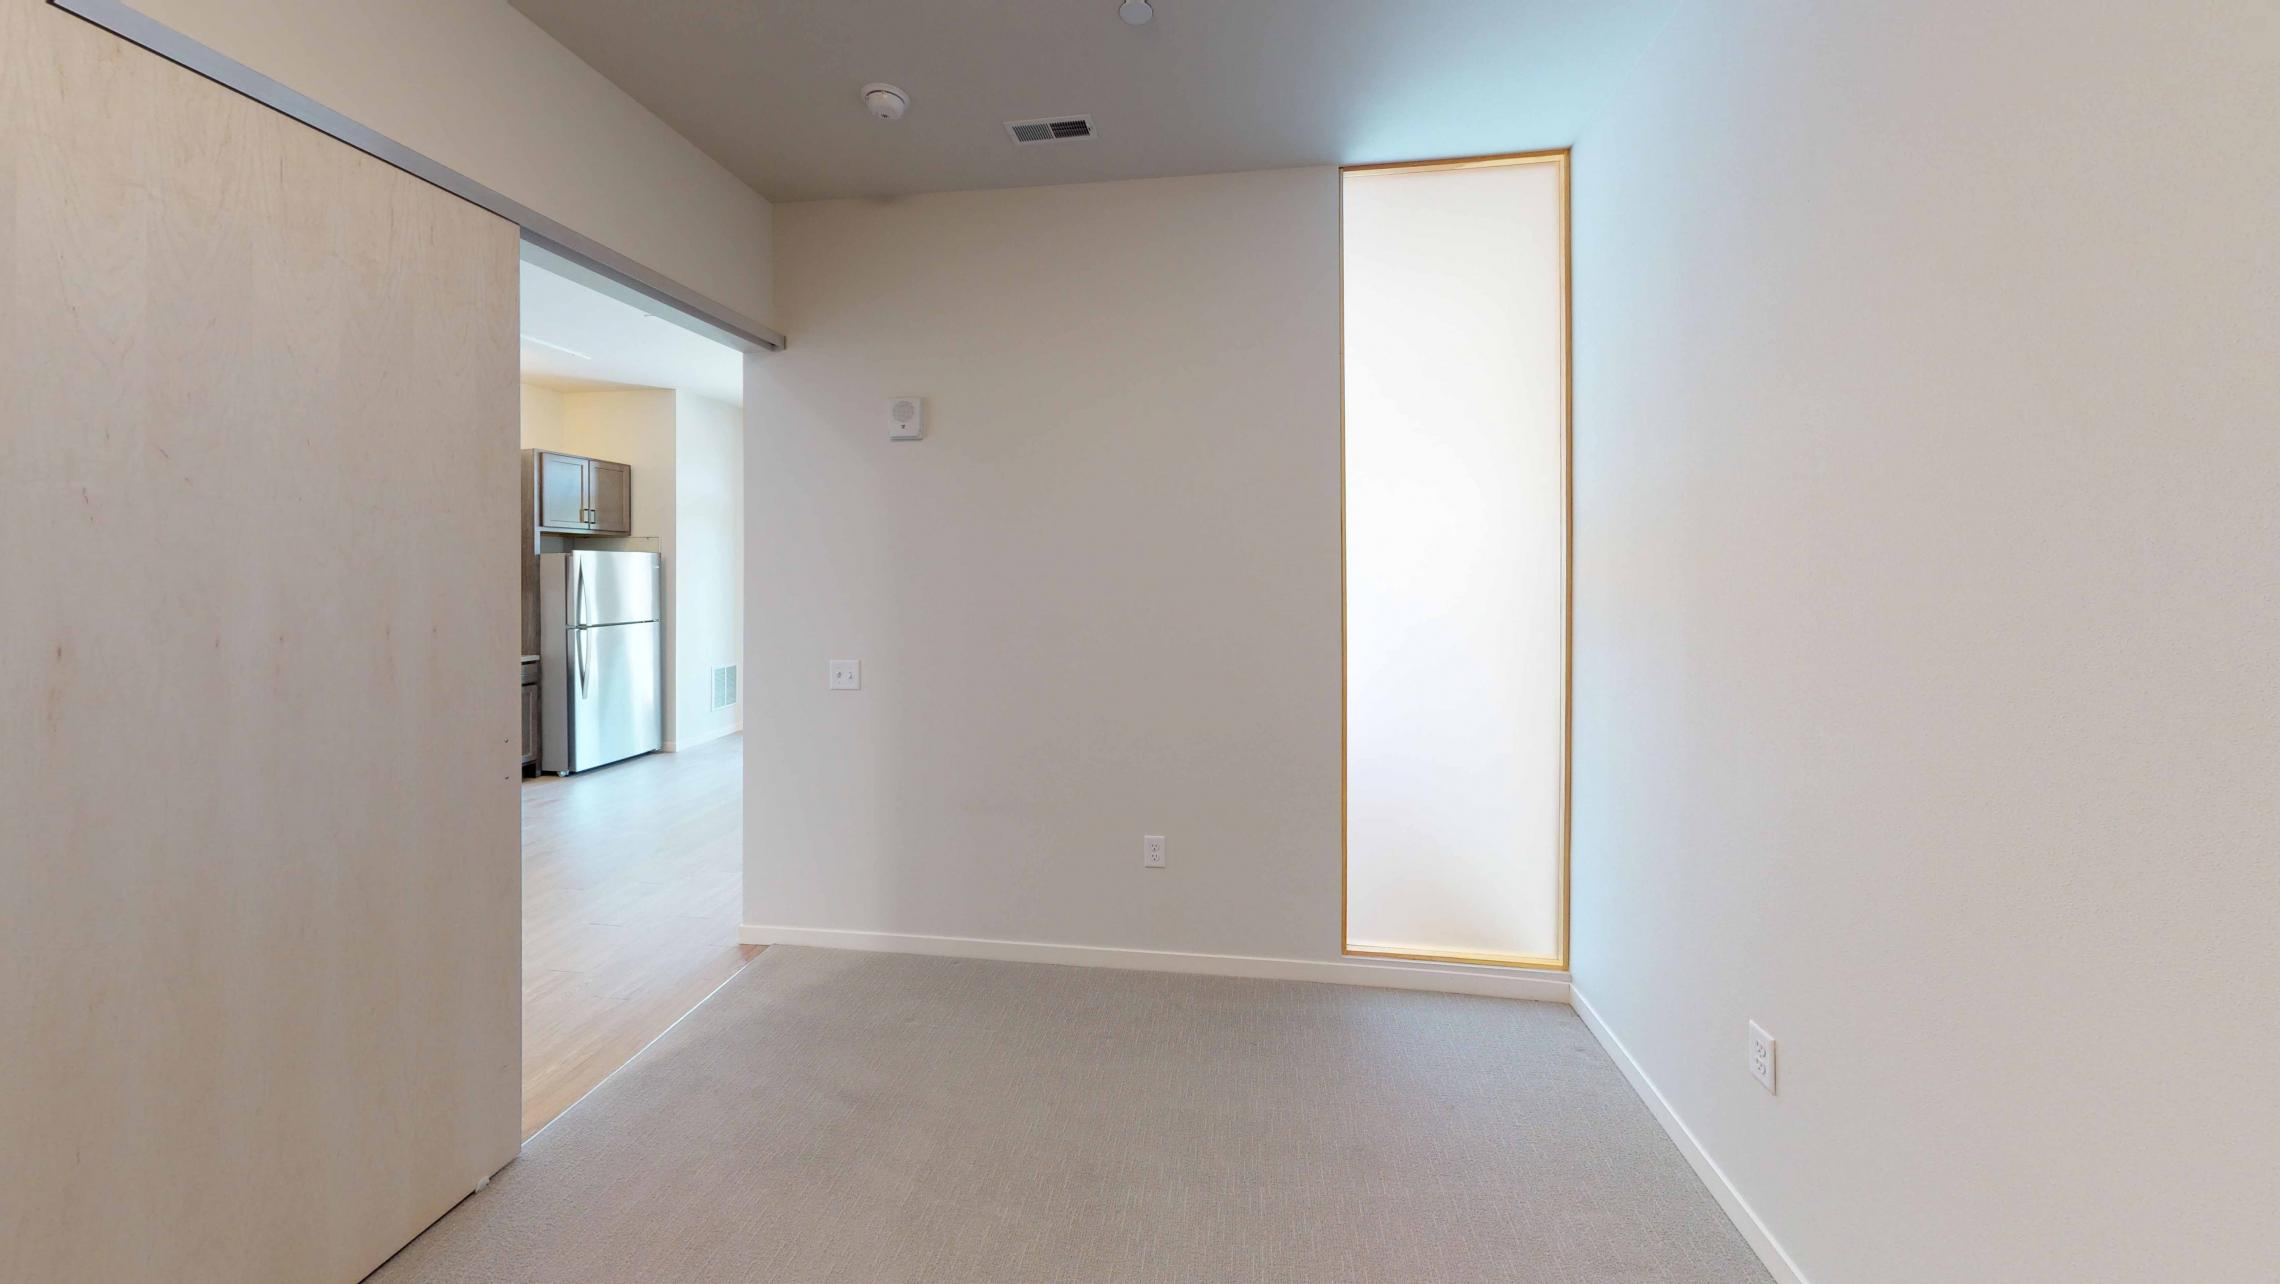 Quarter-Row-Yards-Apartment-107-One-Bedroom-Modern-Upscale-Fitness-Lounge-Courtyard-Downtown-Madison-Balcony-Amenities-Luxury